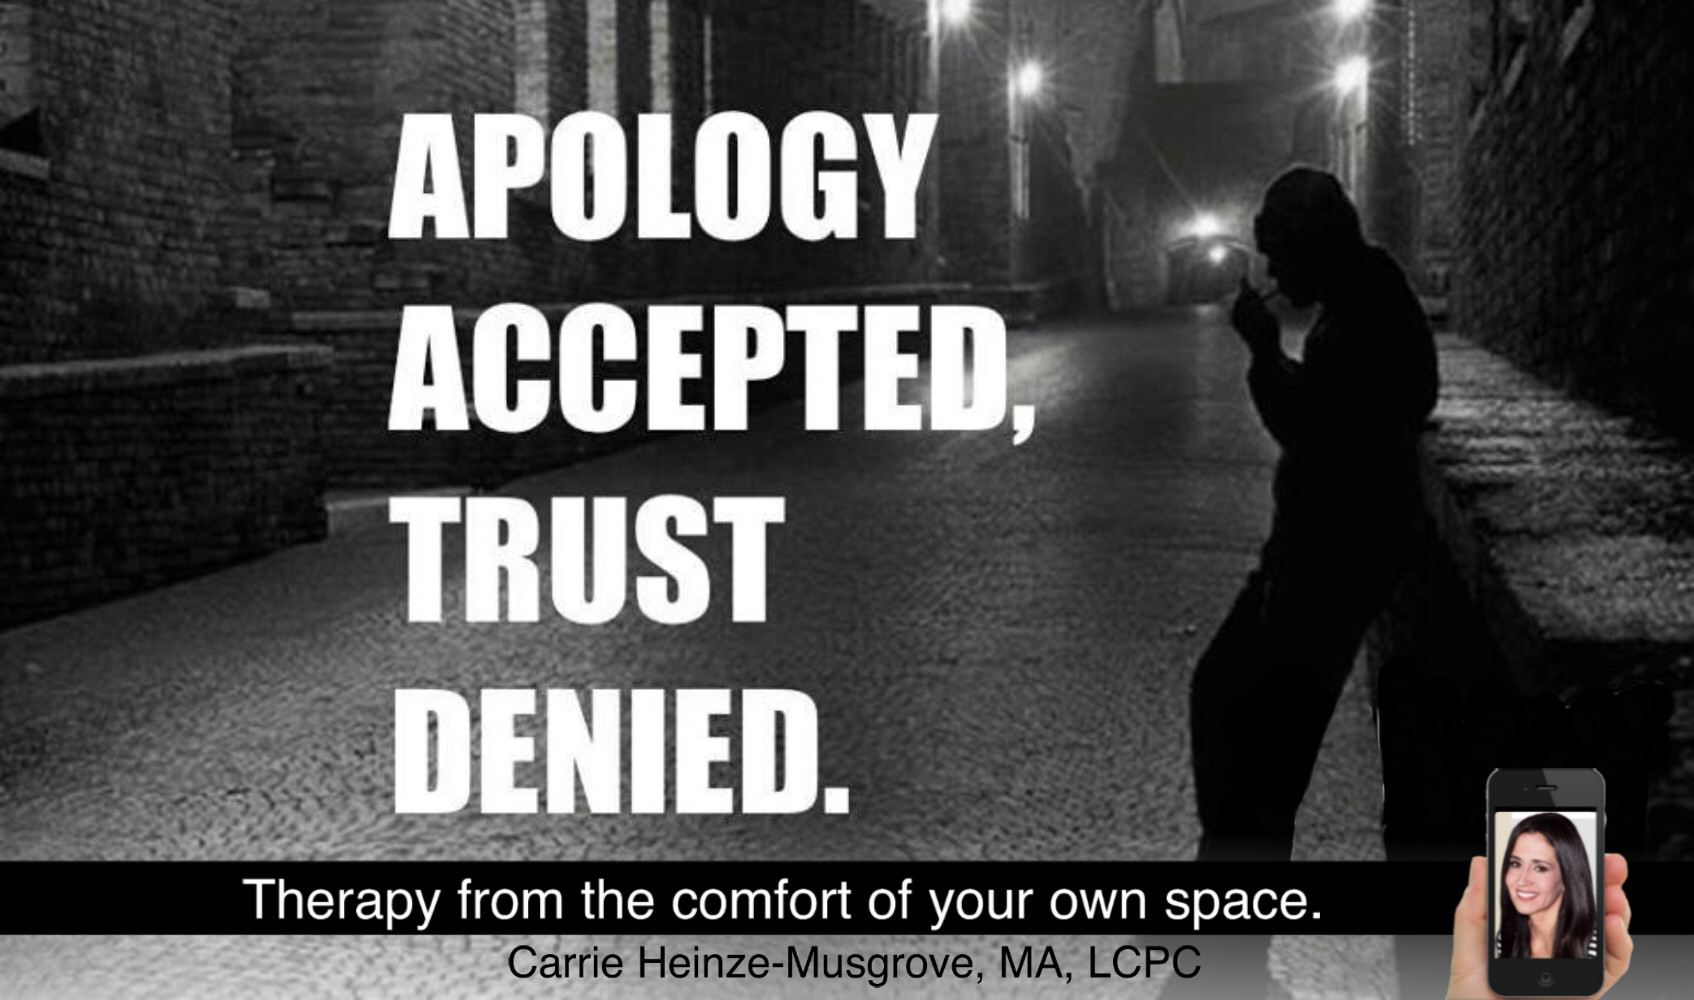 When saying sorry isn't good for your relationship